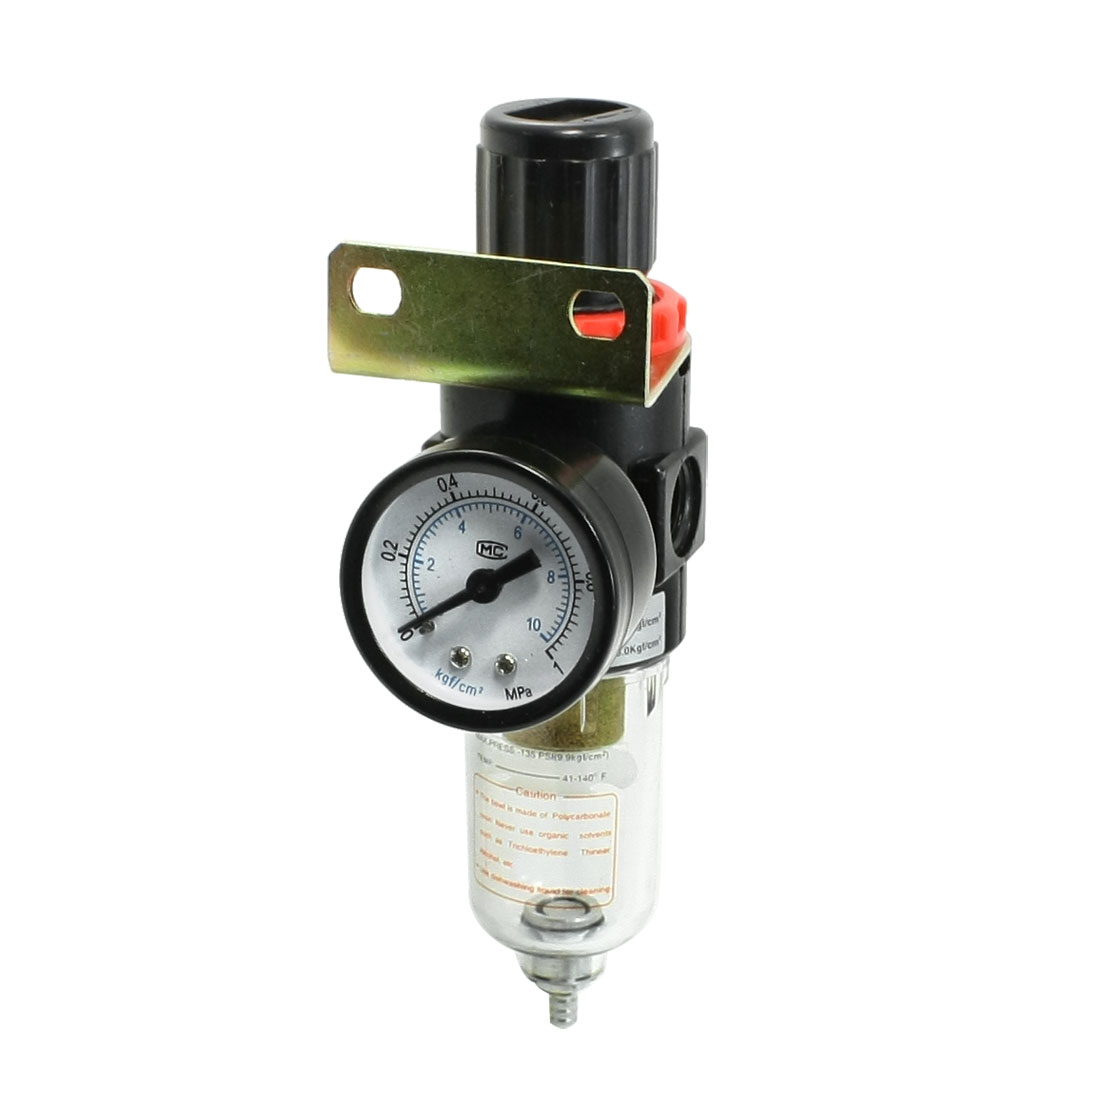 Pneumatic Adjustable Pressure Regulator Air Source Treatment 0-1Mpa